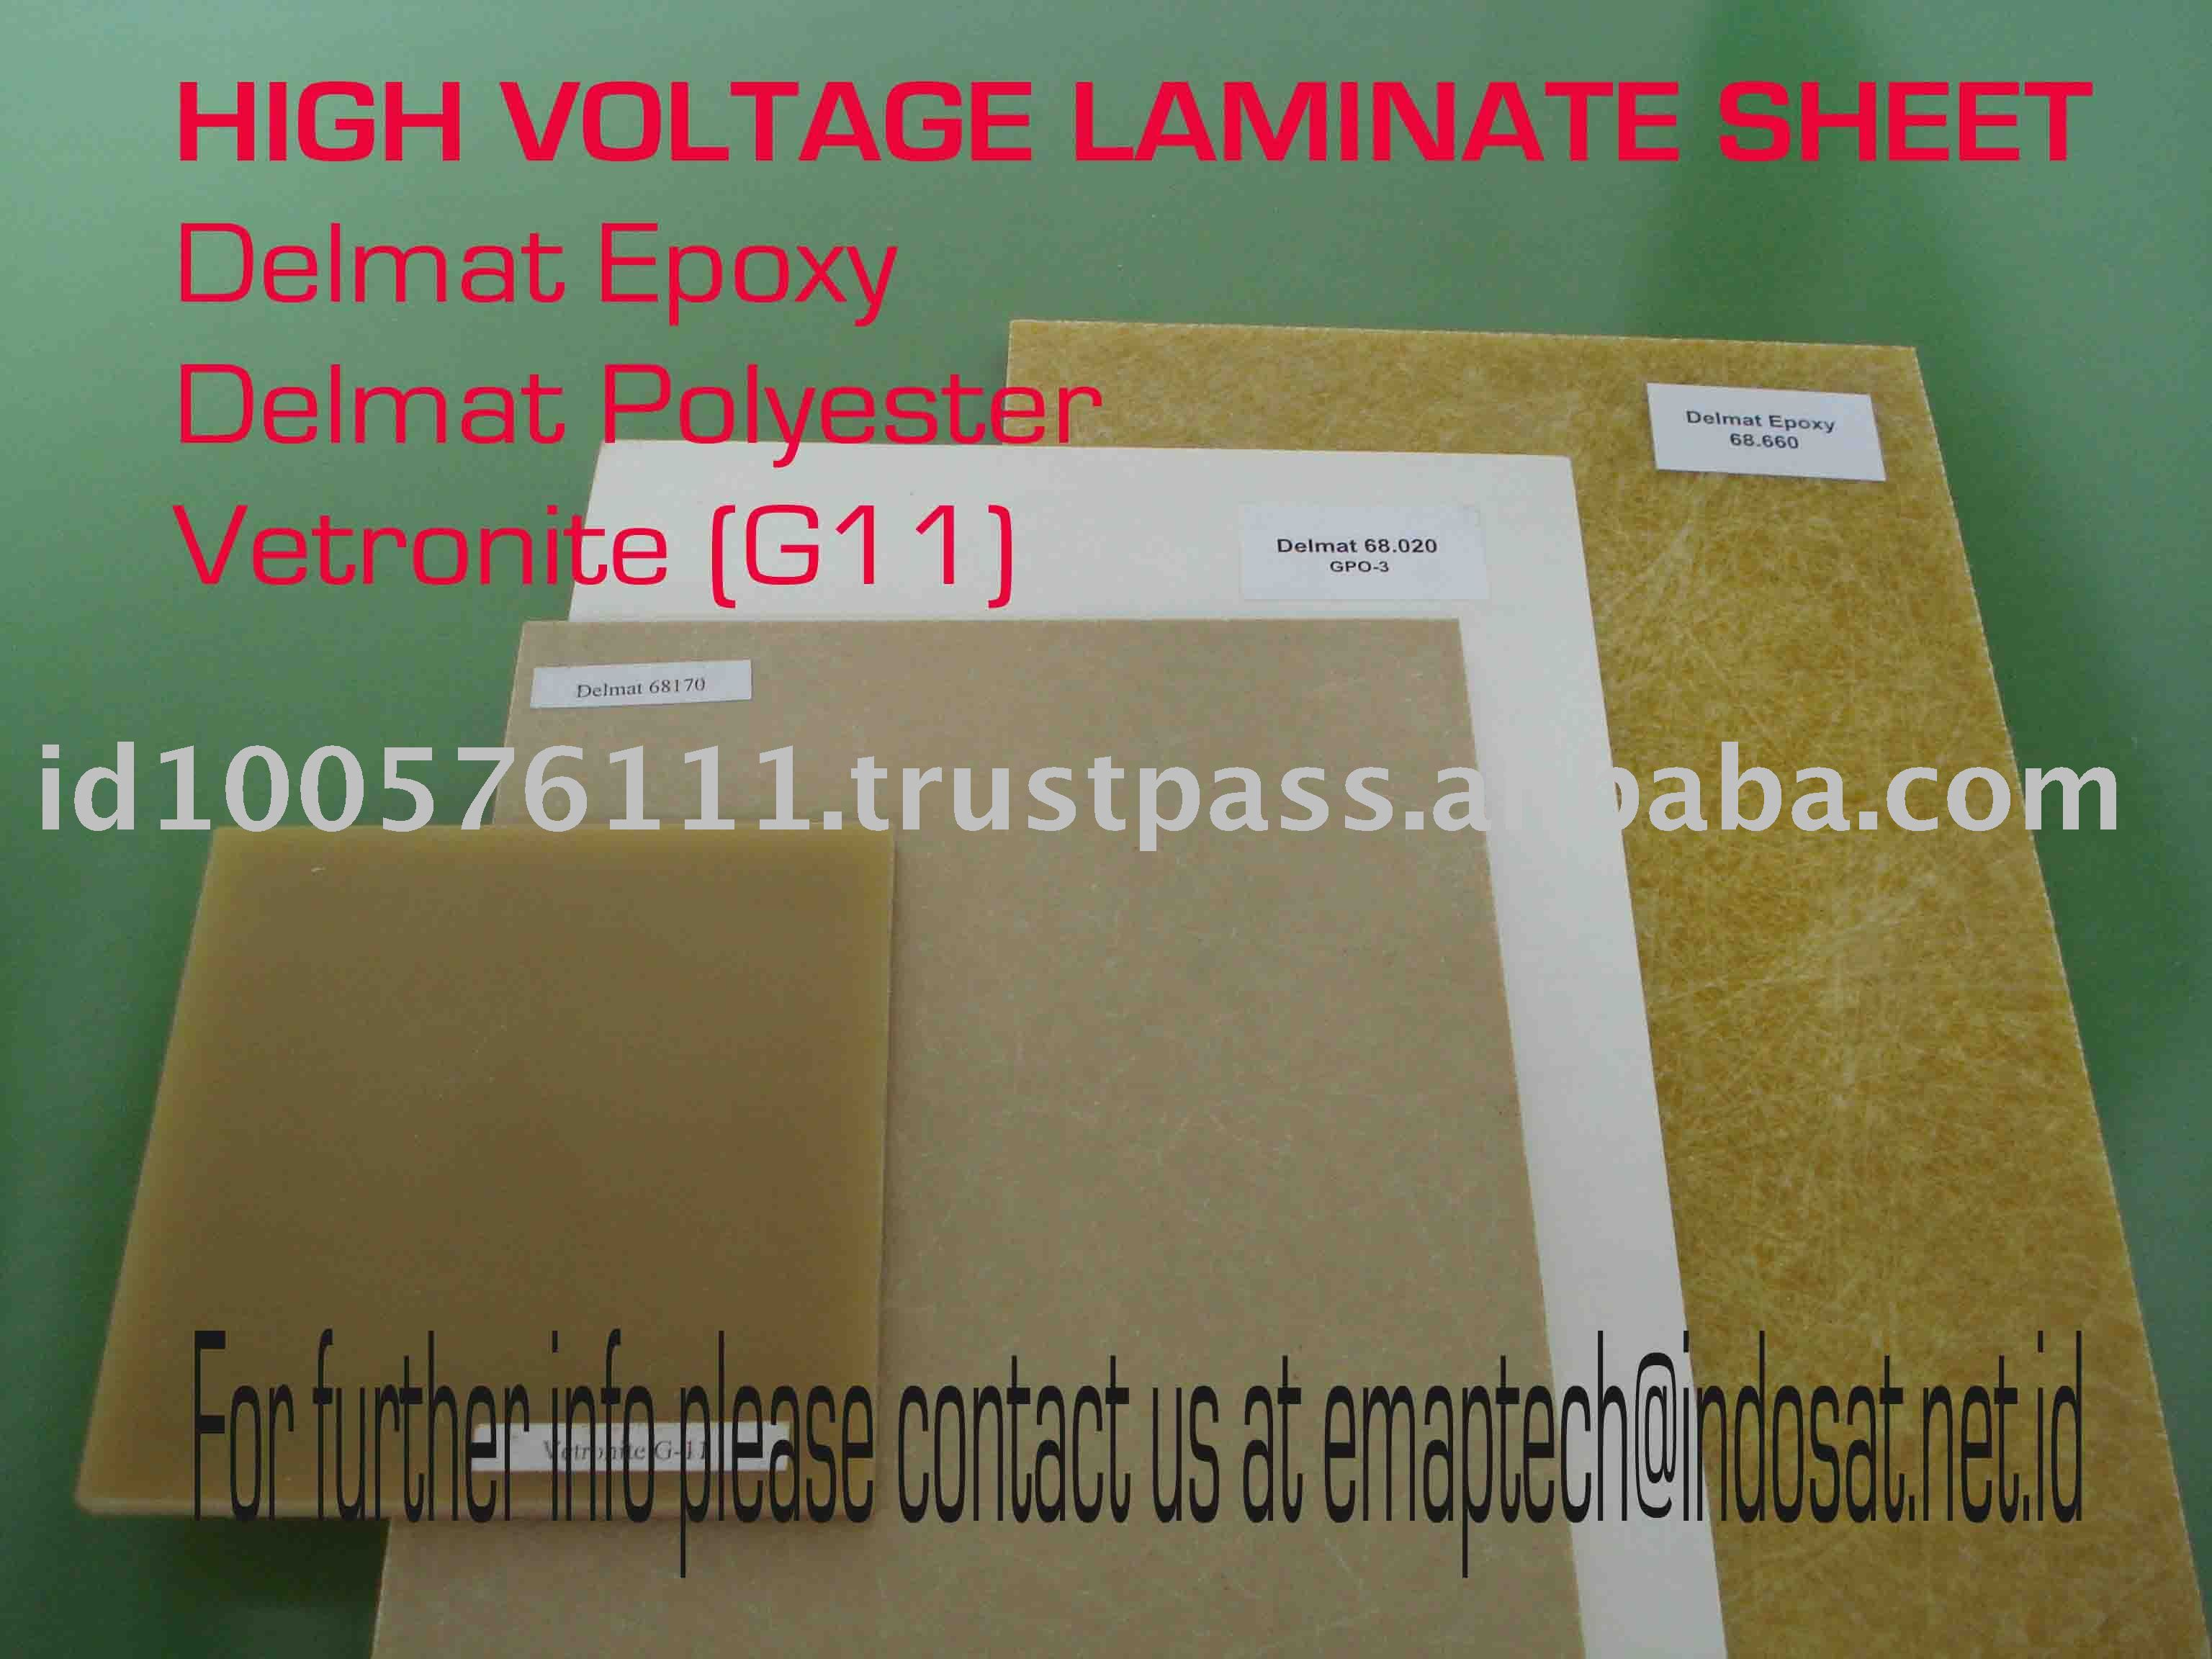 High Voltage Laminate Sheet